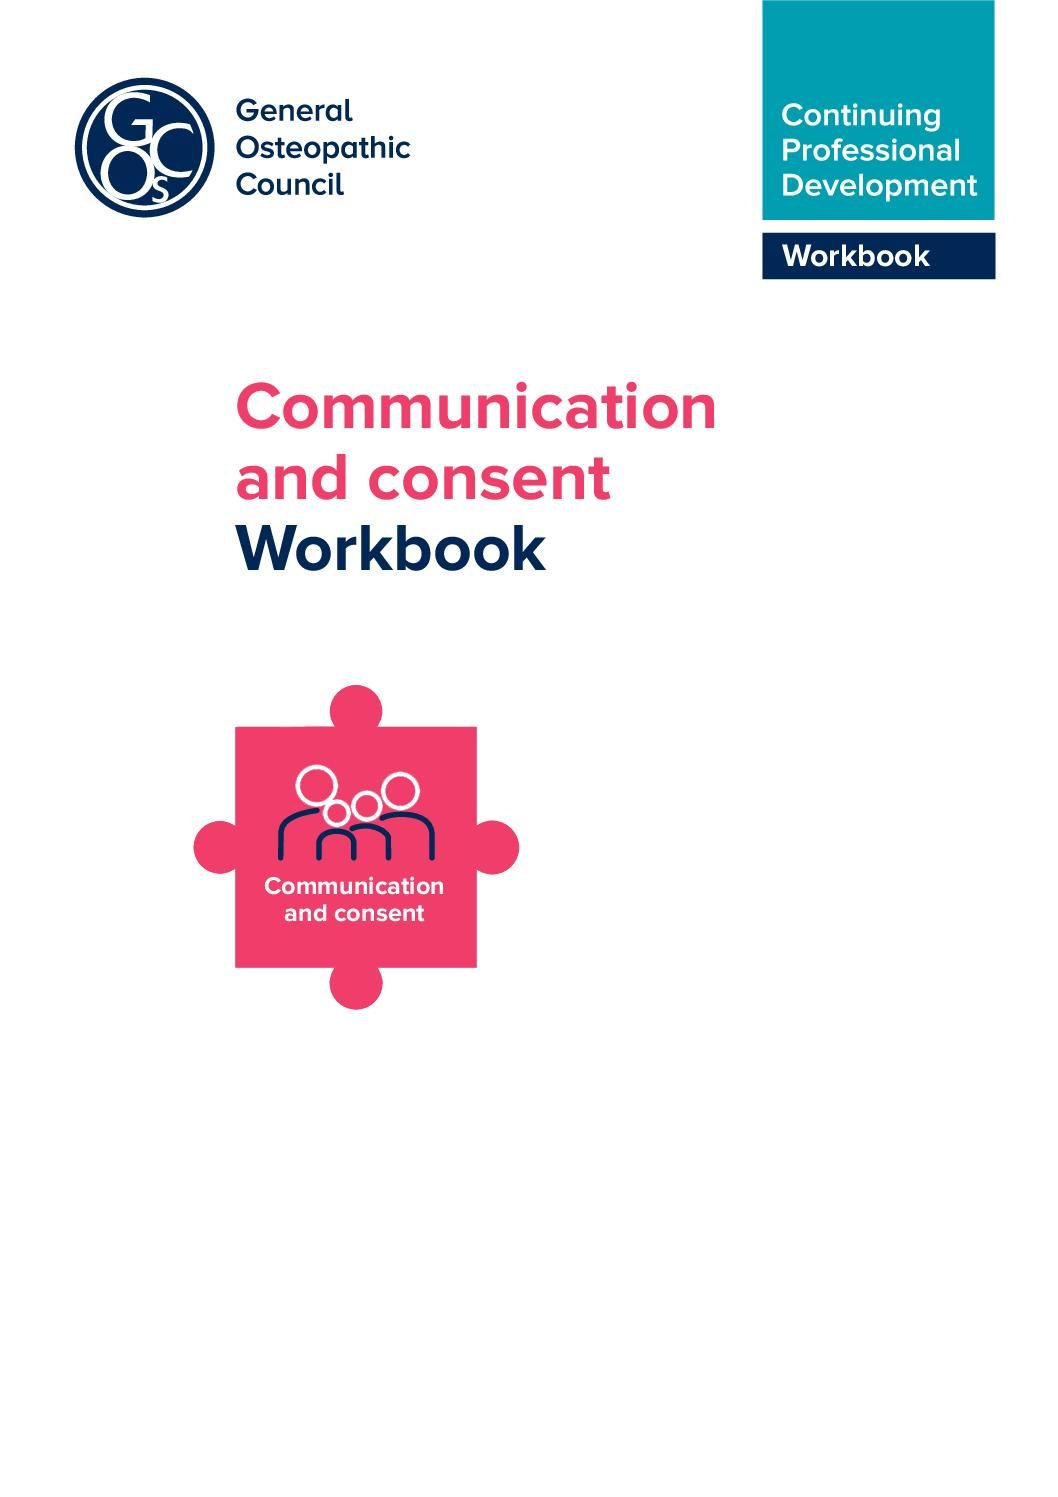 Communication and consent Workbook